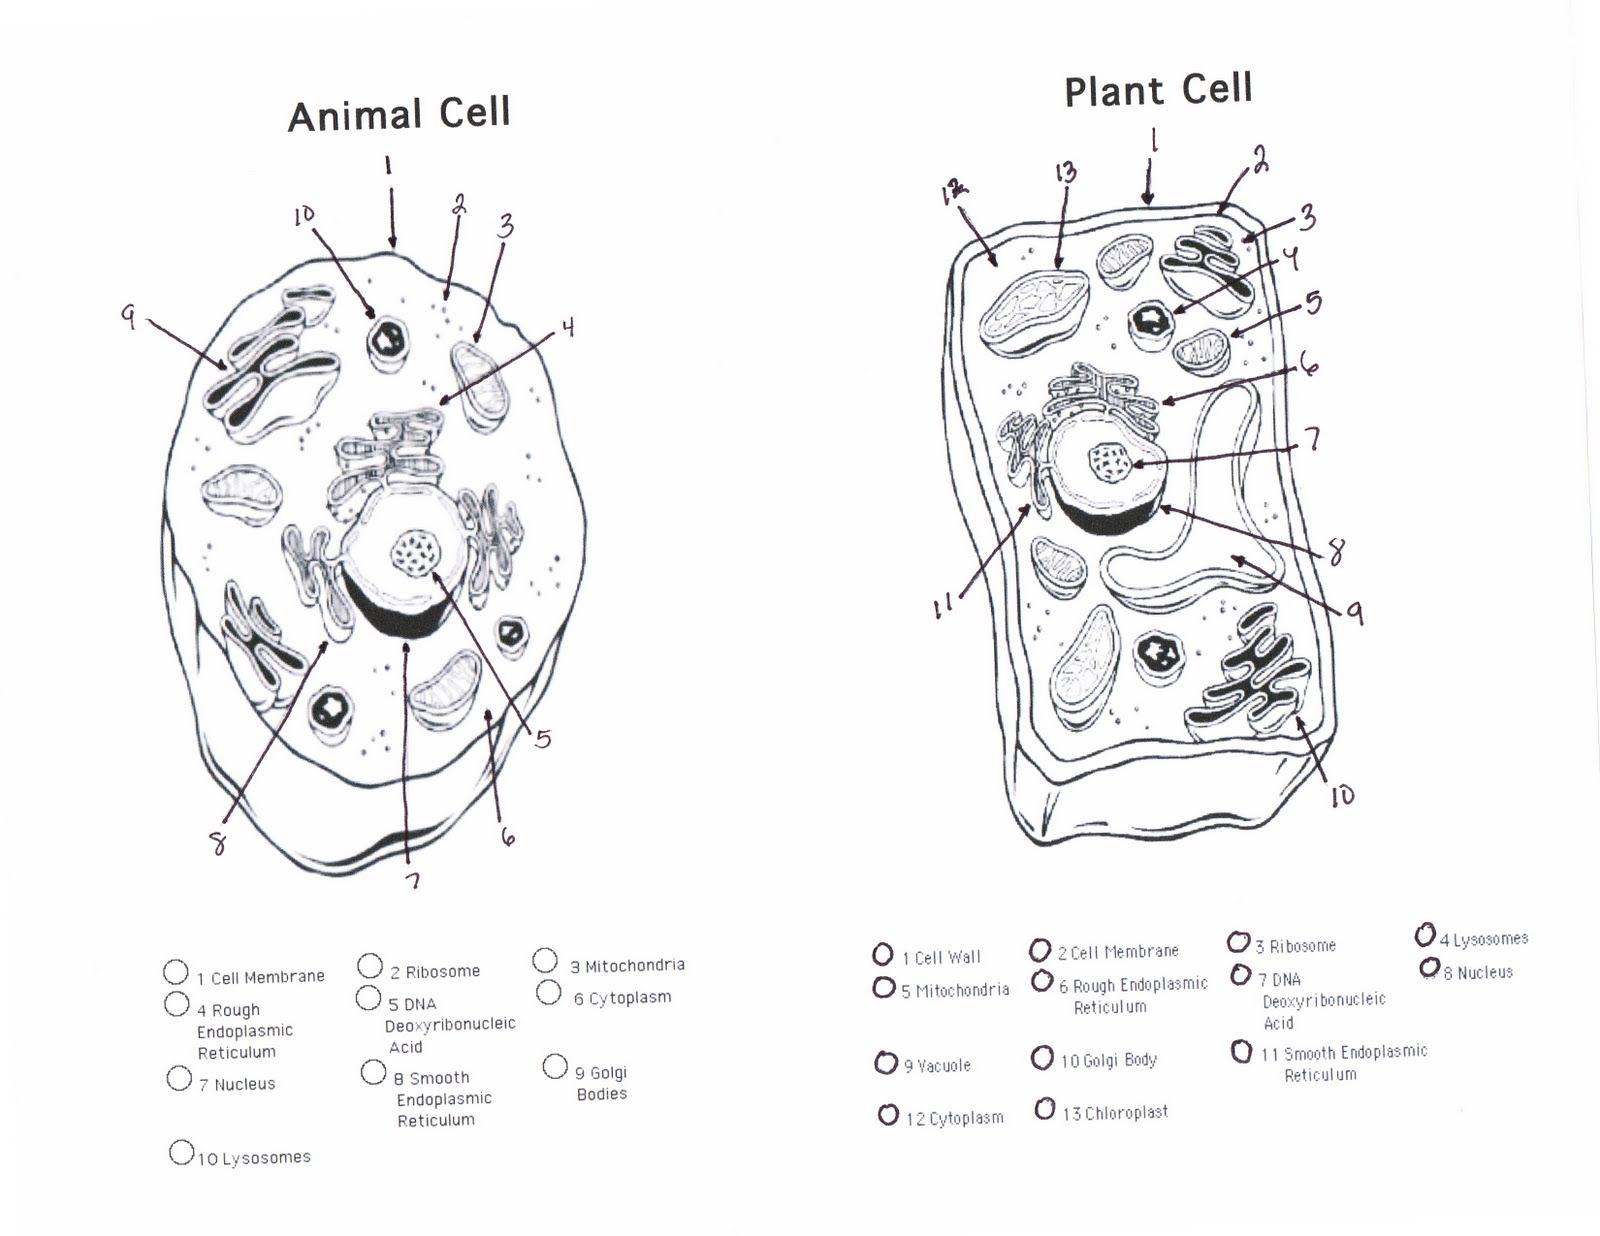 plant and animal cell diagram unlabeled printable diagram [ 1600 x 1236 Pixel ]